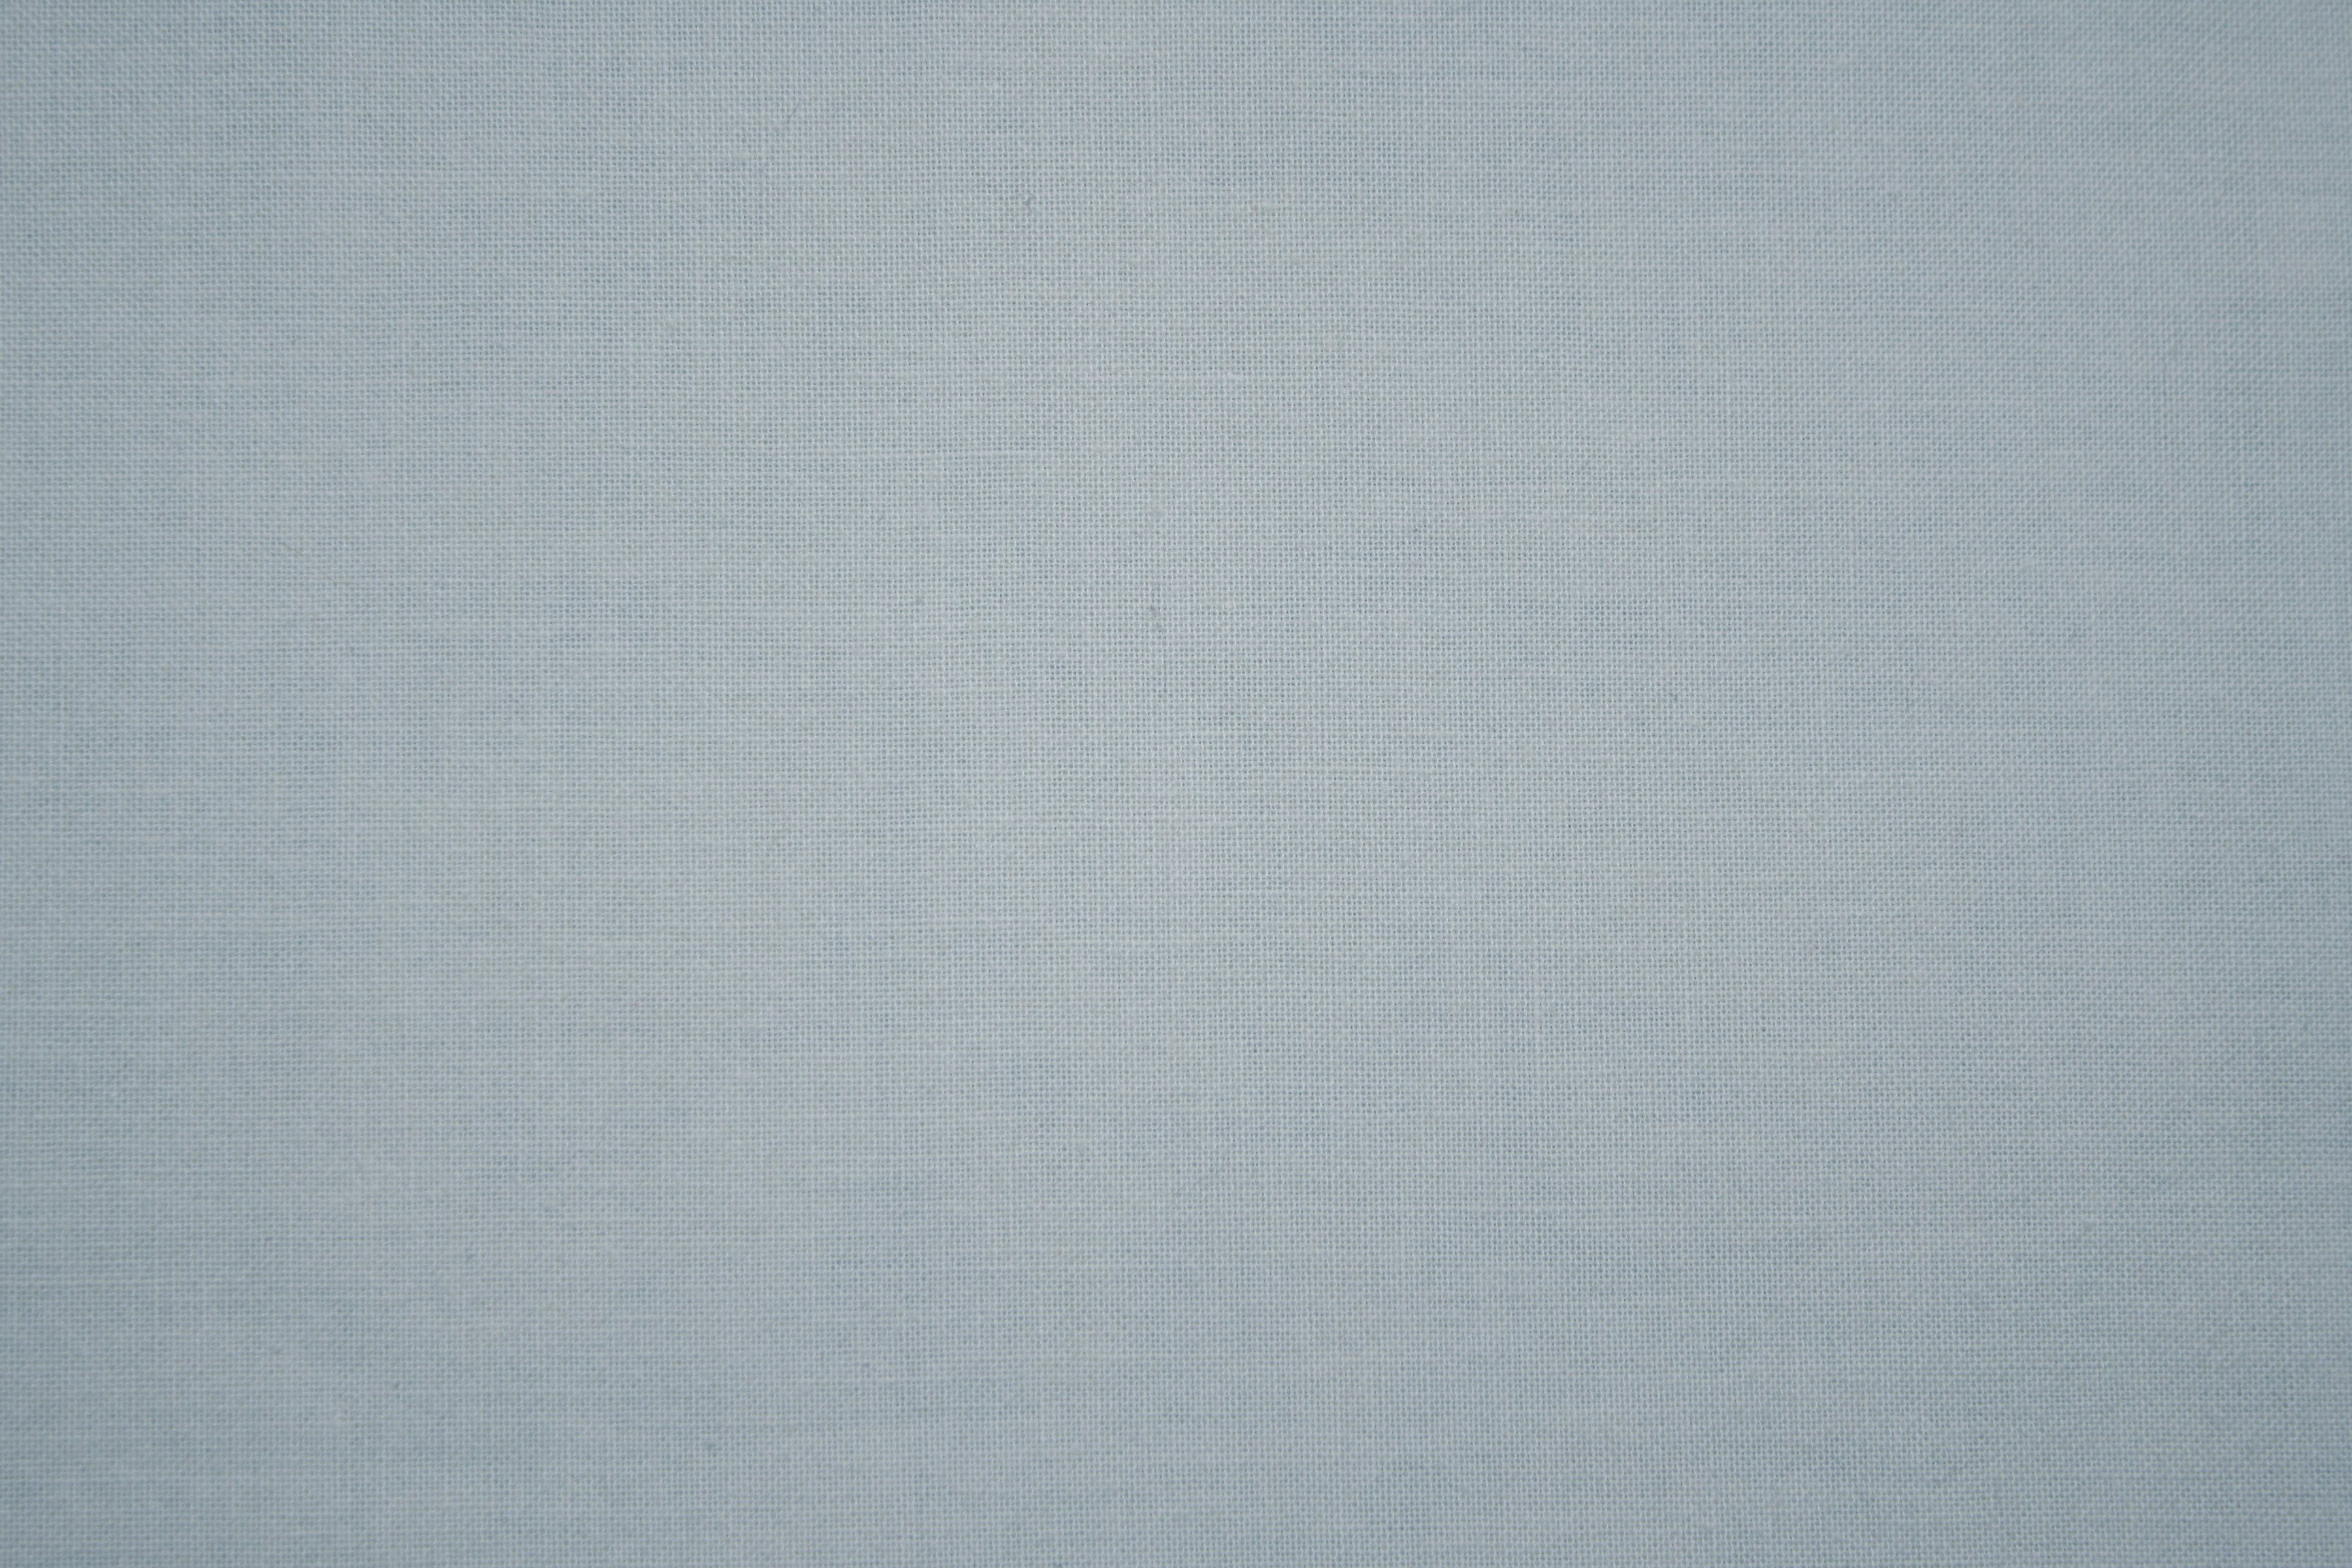 Dovetail Sw7018 Blue Gray Canvas Fabric Texture Prints Patterns